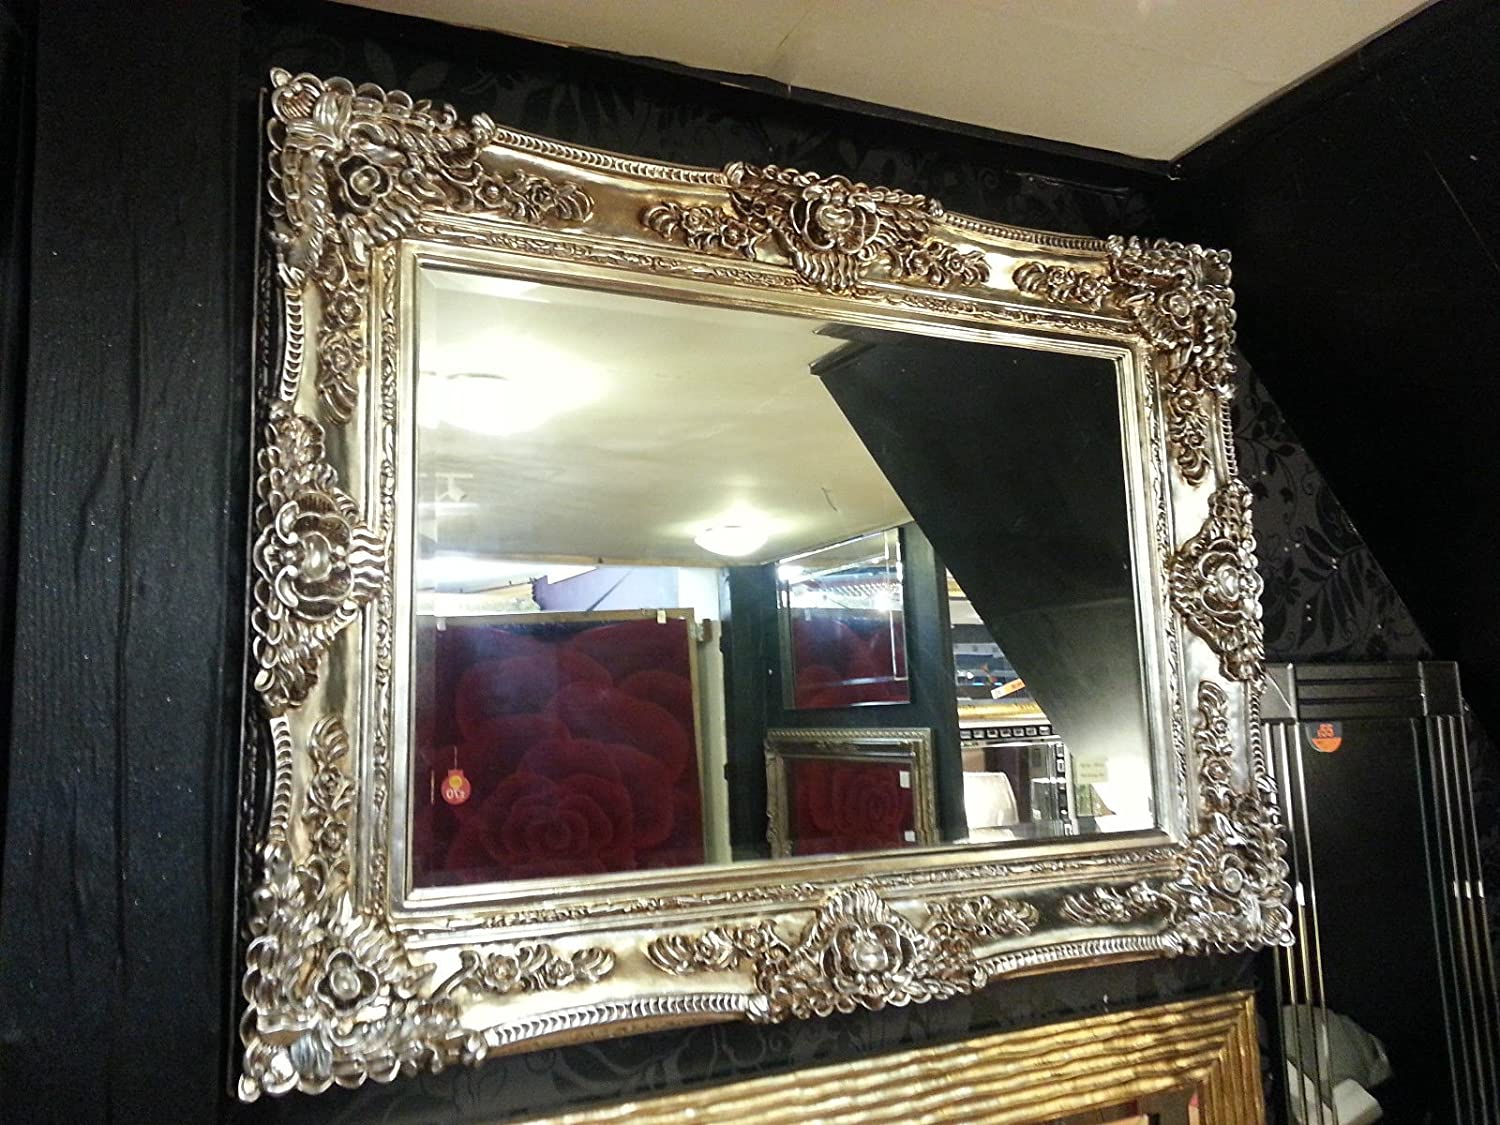 Antique Champagne Silver Ornate Vintage French Beveled Wall Mirror 130x103cm New Amazon Co Uk Kitchen Home